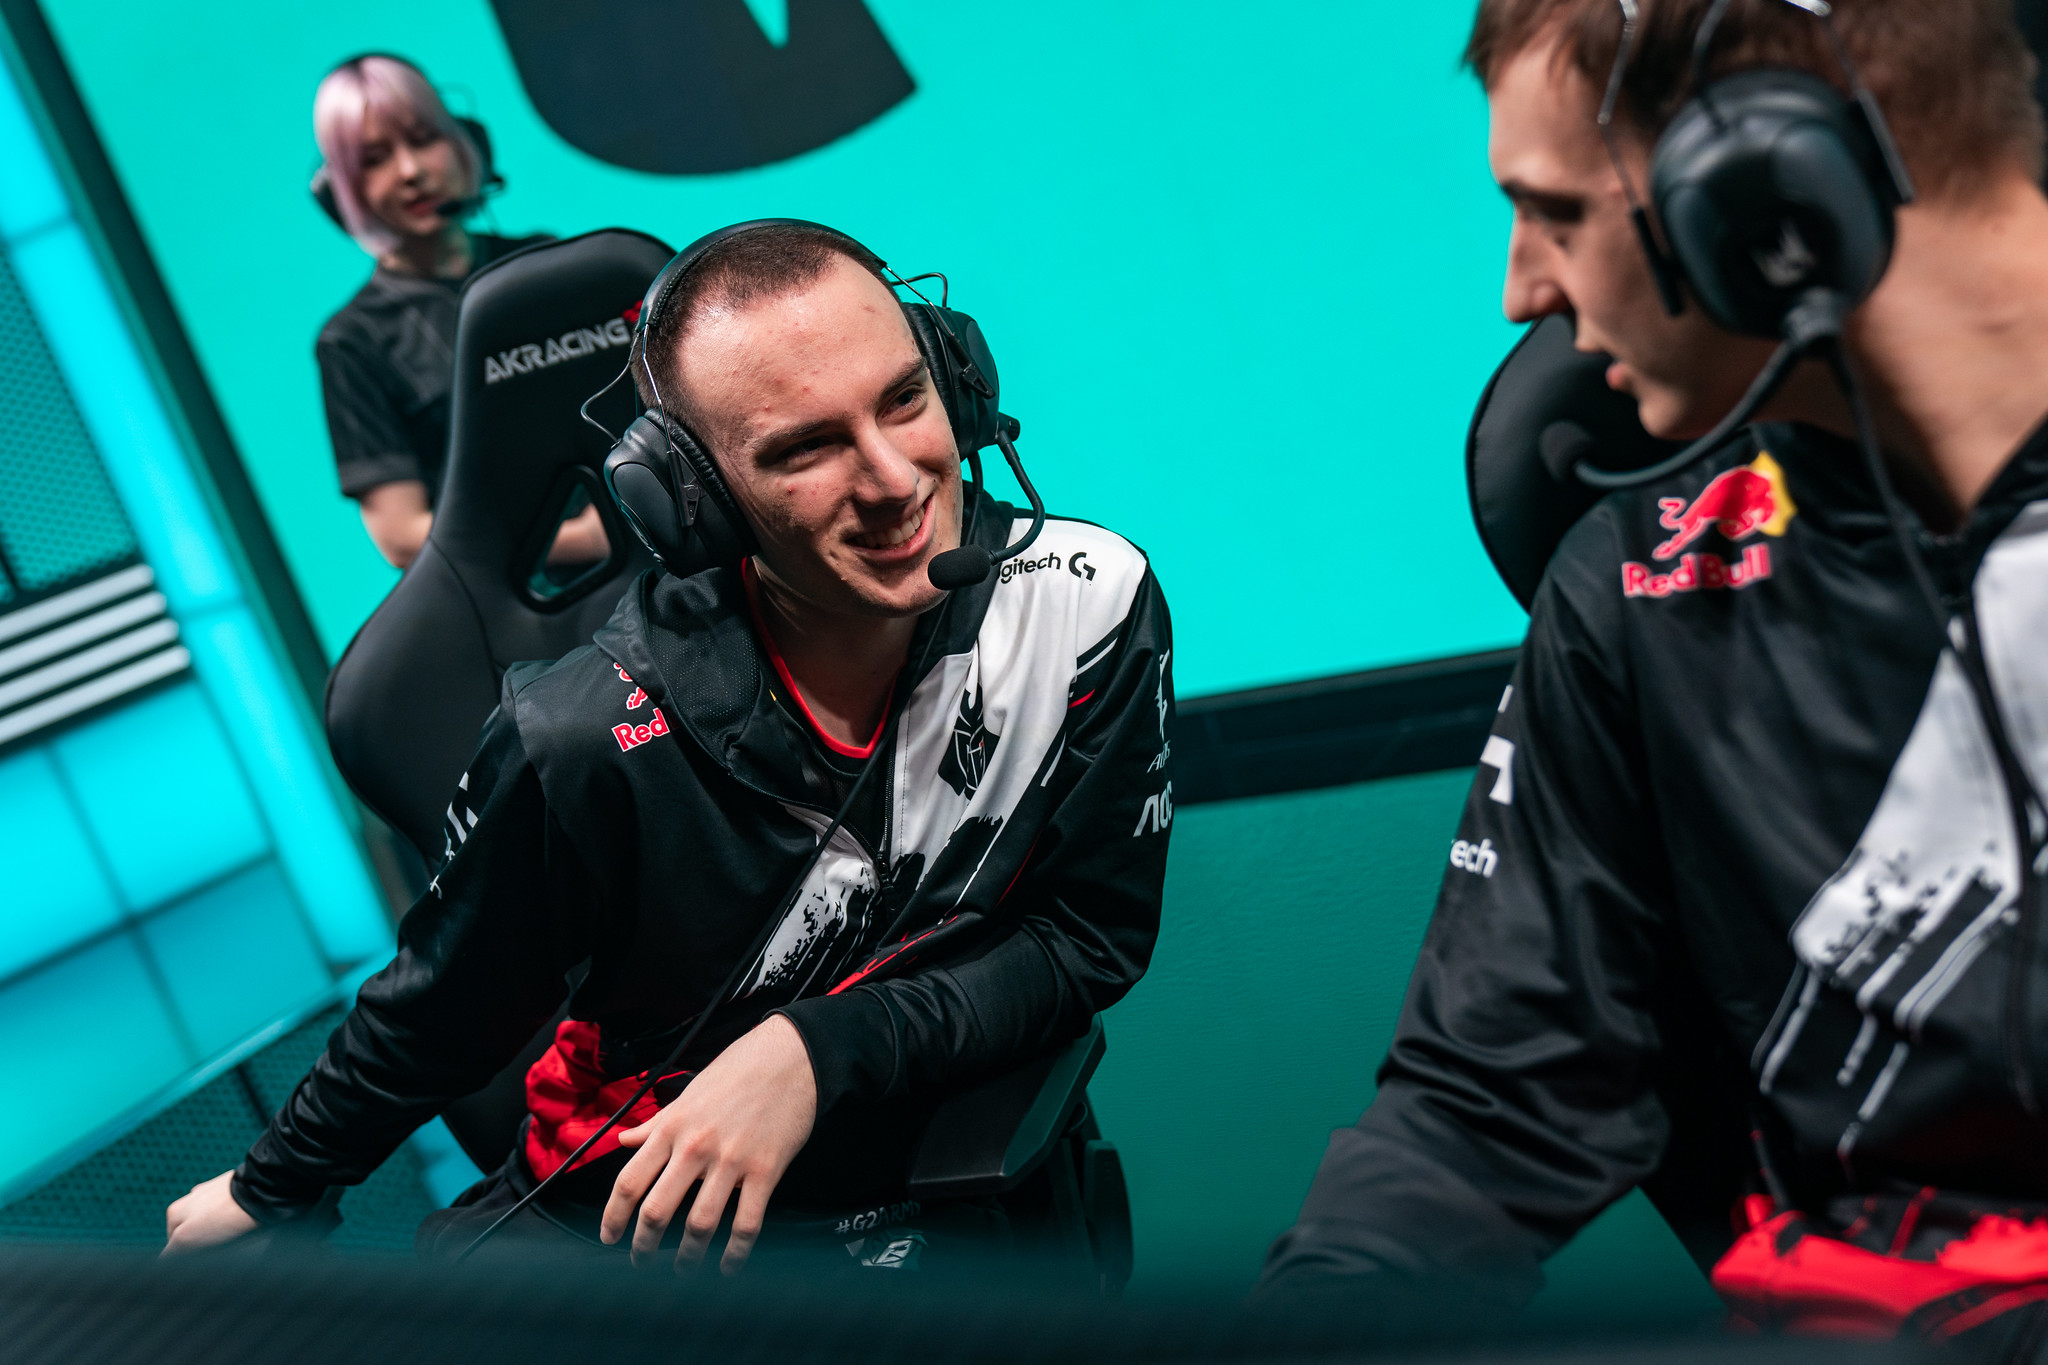 G2 Esports superstars Perkz and Caps have become one of the most feared carry duos in League of Legends.